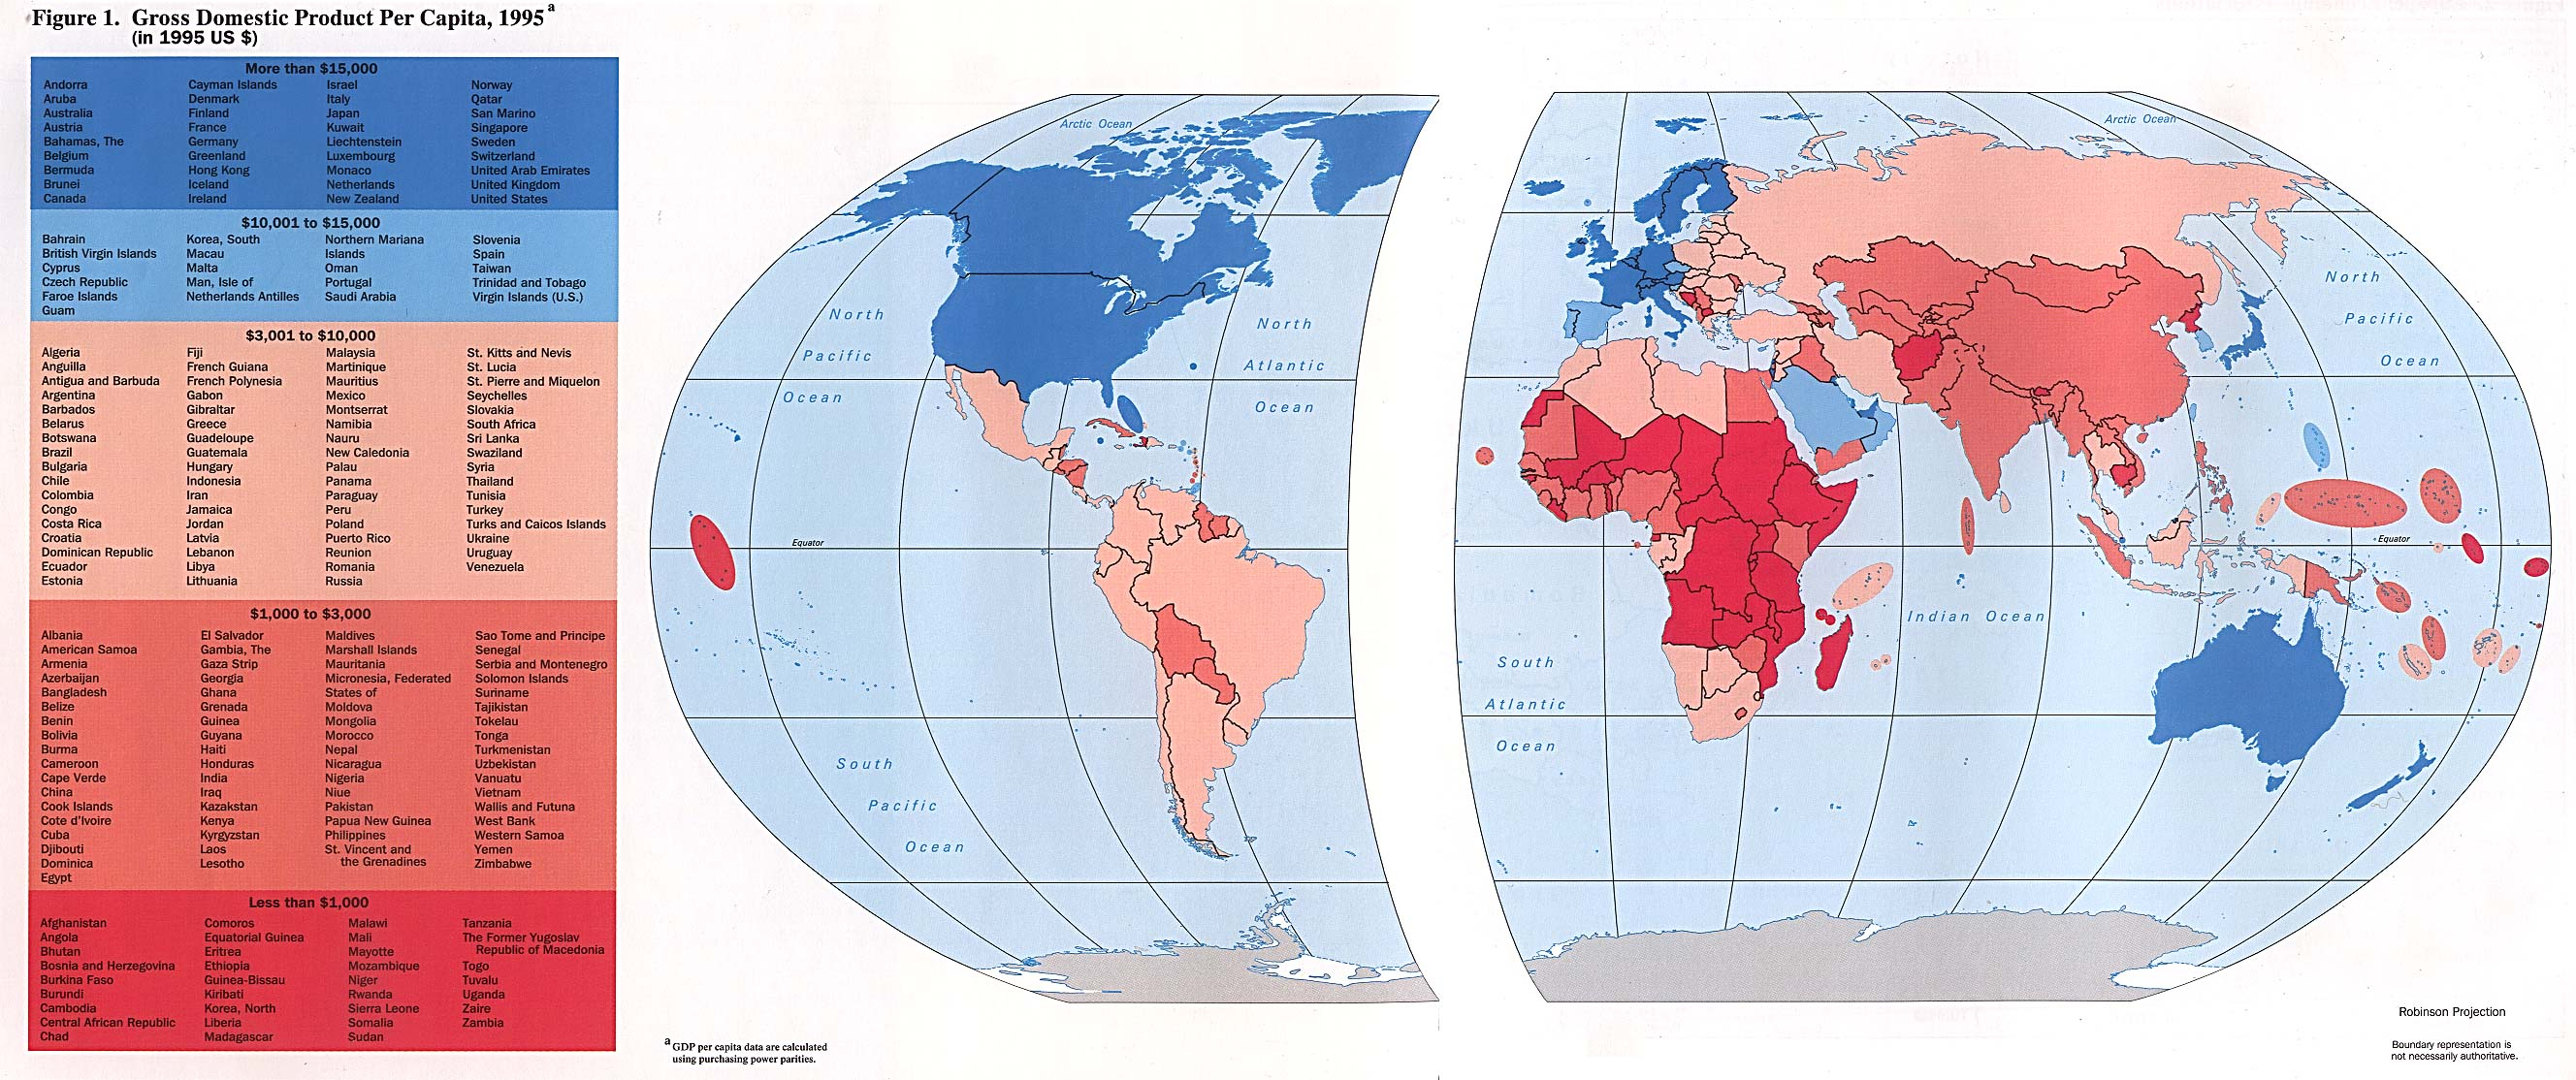 World Map GDP per Capita